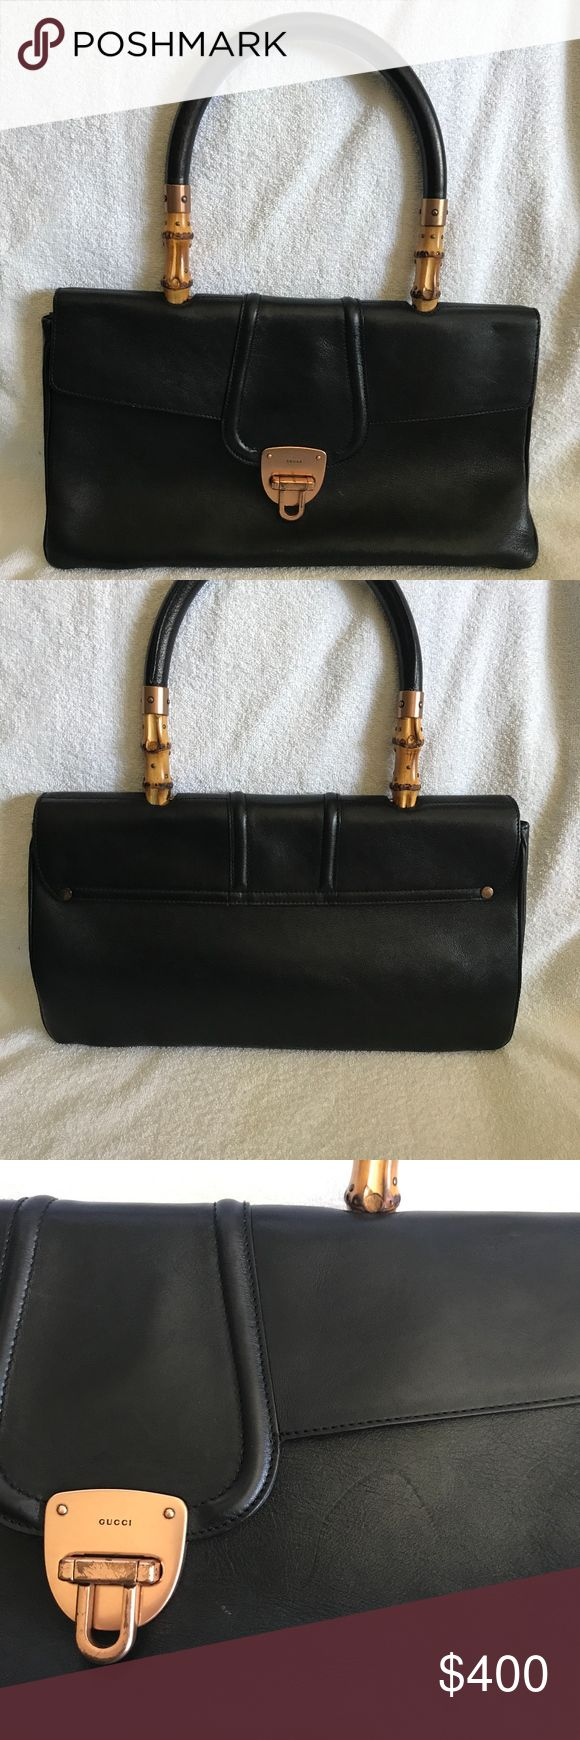 GORGEOUS VINTAGE GUCCI BAG Beautiful Vintage Gucci Bag- still in amazing condition. Has a few scratches from minor wear and tear- see pictures. Iconic Gucci bamboo handles and soft leather. Versatile and classic!  ***NO TRADES***NO PAYPAL***PRICE NON NEGOTIABLE Gucci Bags Shoulder Bags